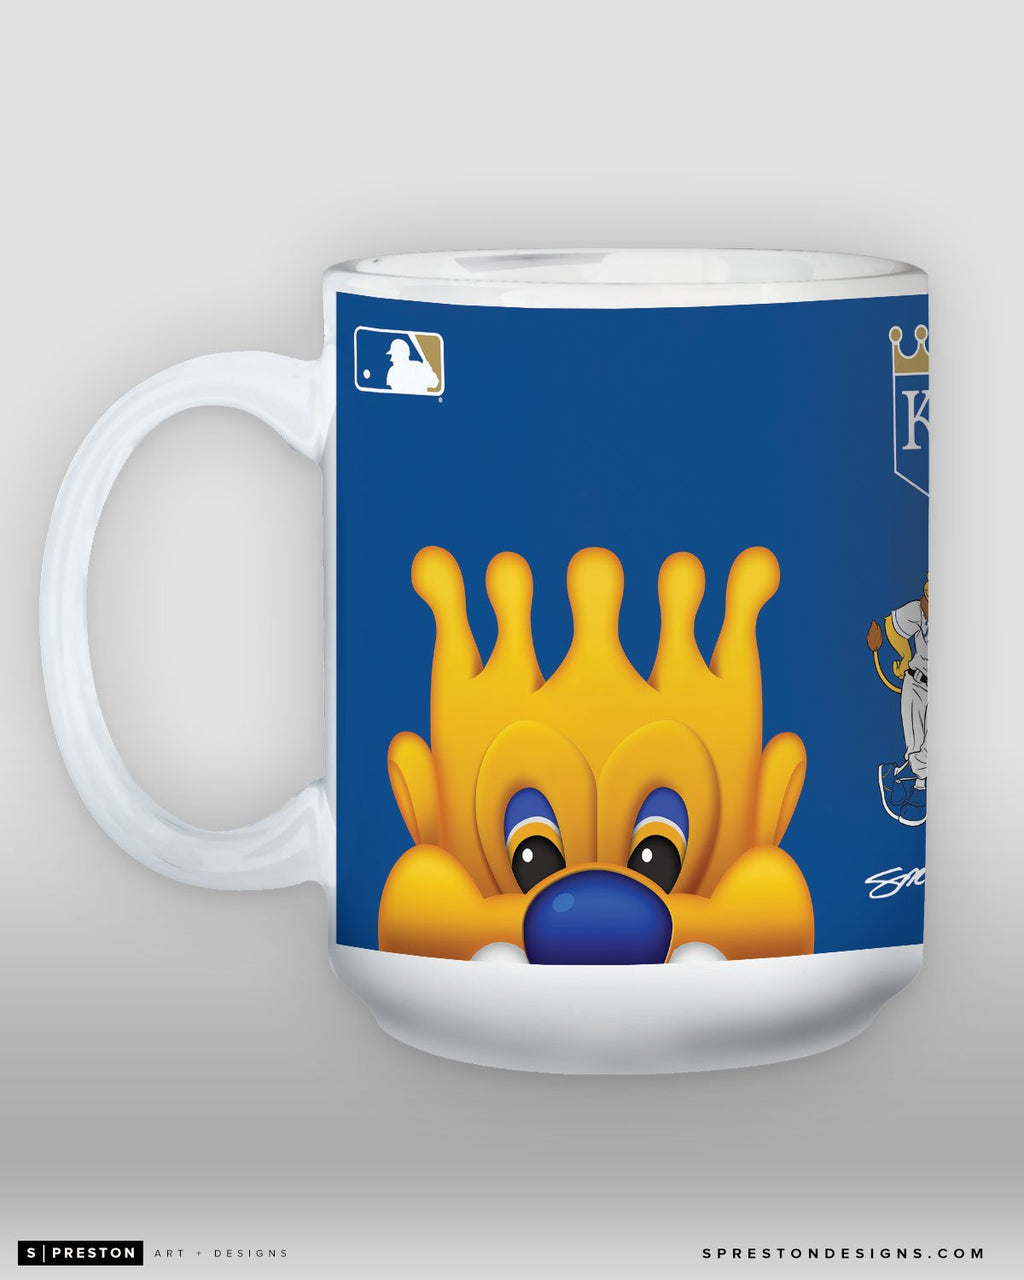 Minimalist Sluggerrr Coffee Mug - MLB Licensed - Kansas City Royals Mascot